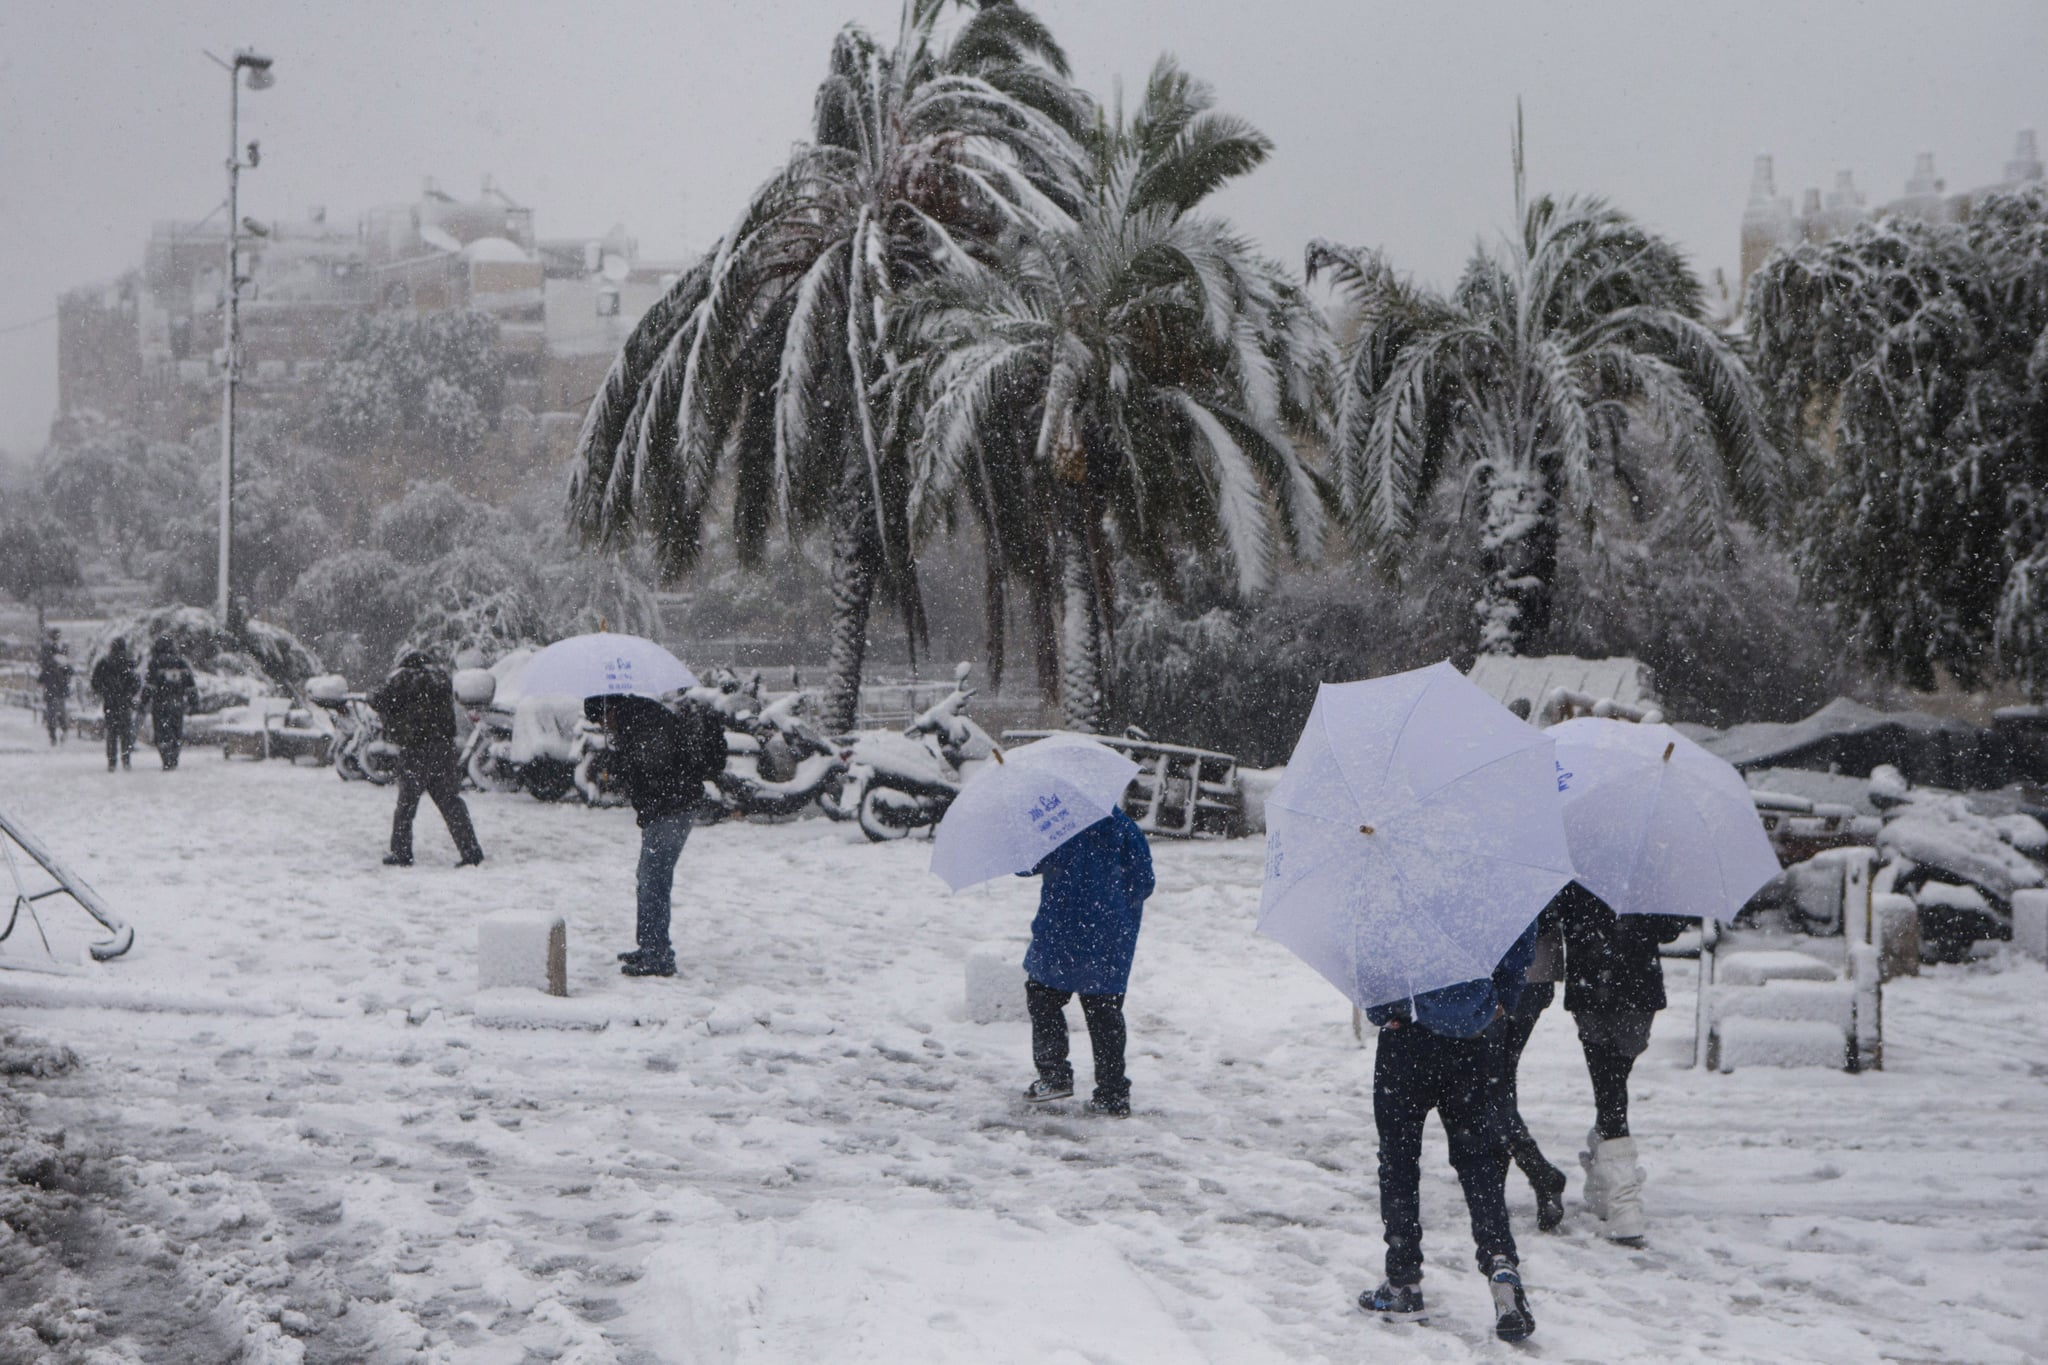 People carried umbrellas to walk through the snow near Damascus gate in Jerusalem.